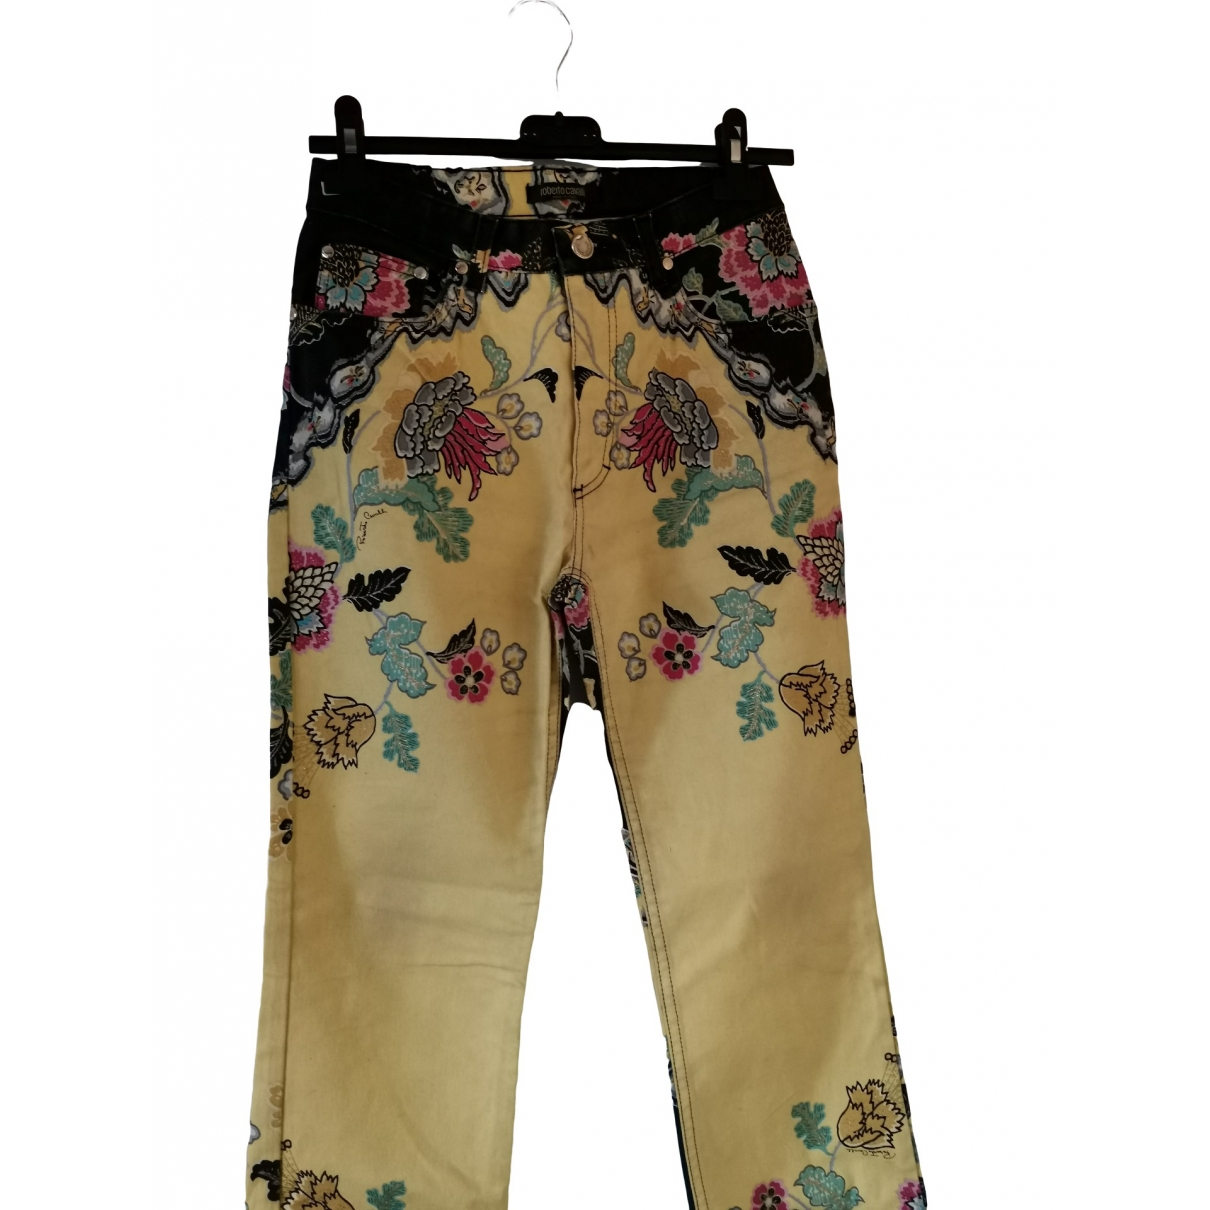 Roberto Cavalli \N Yellow Denim - Jeans Trousers for Women 40 IT